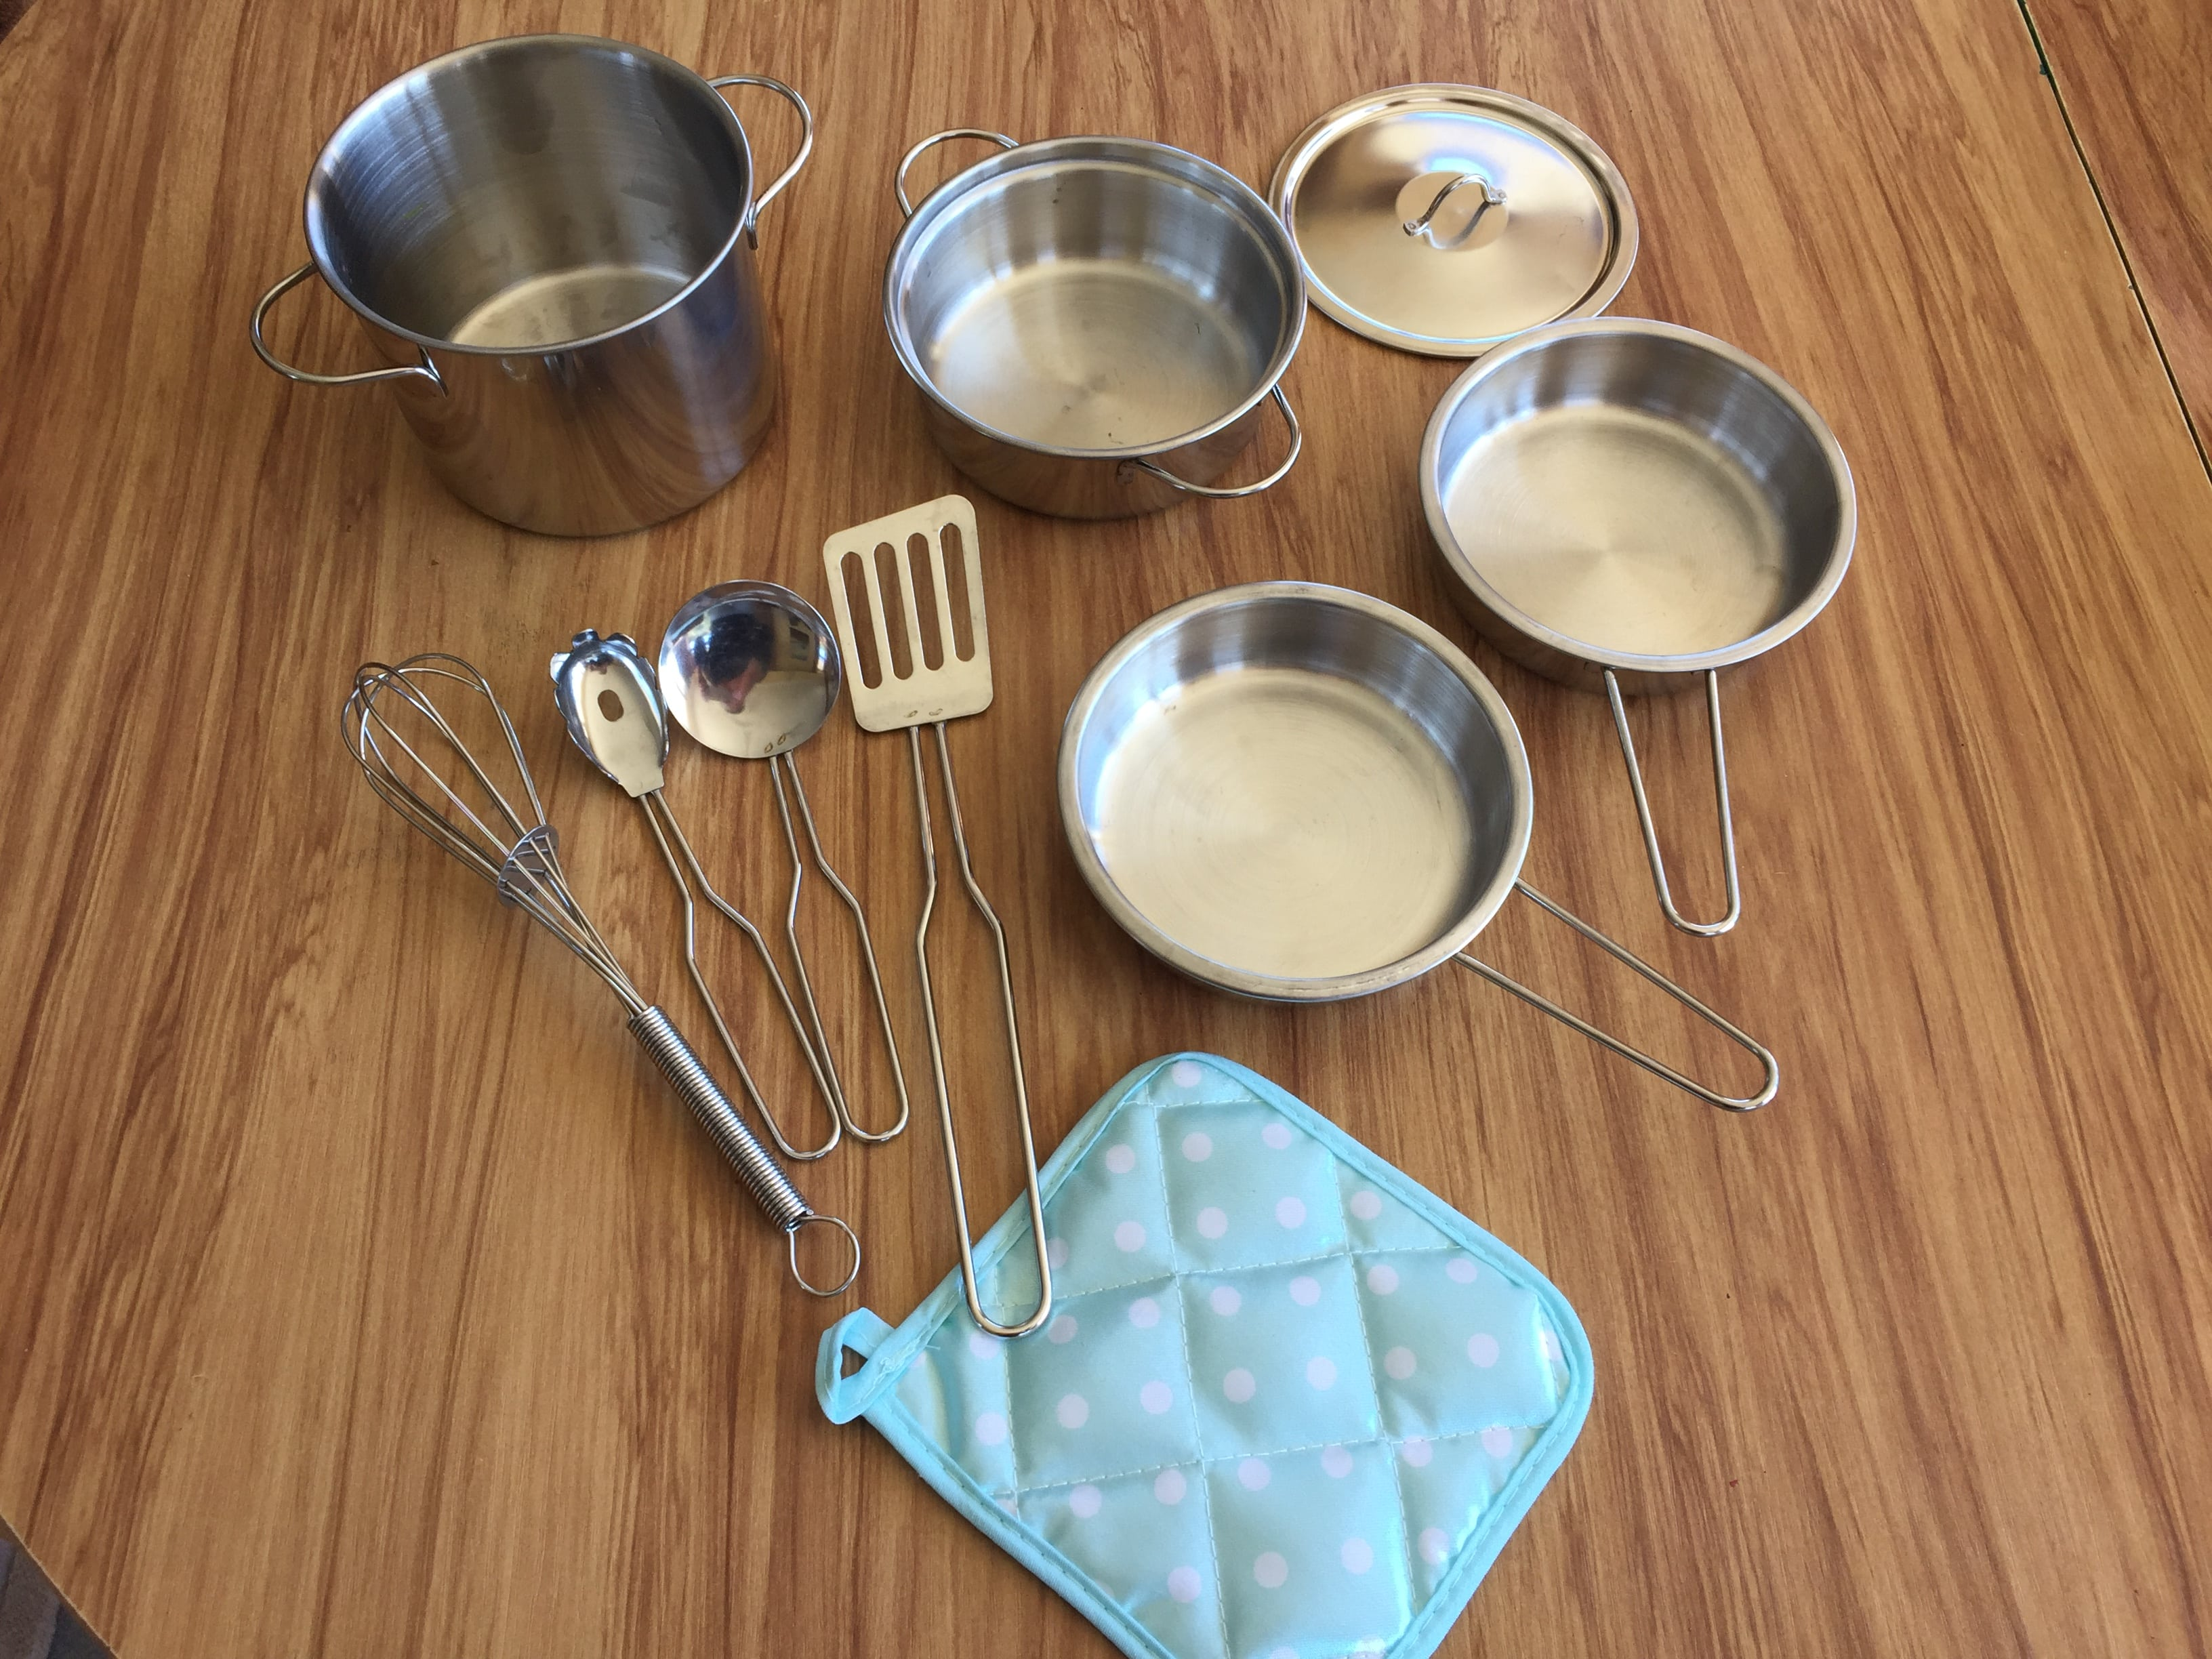 Stainless Steel Cookware Set photo